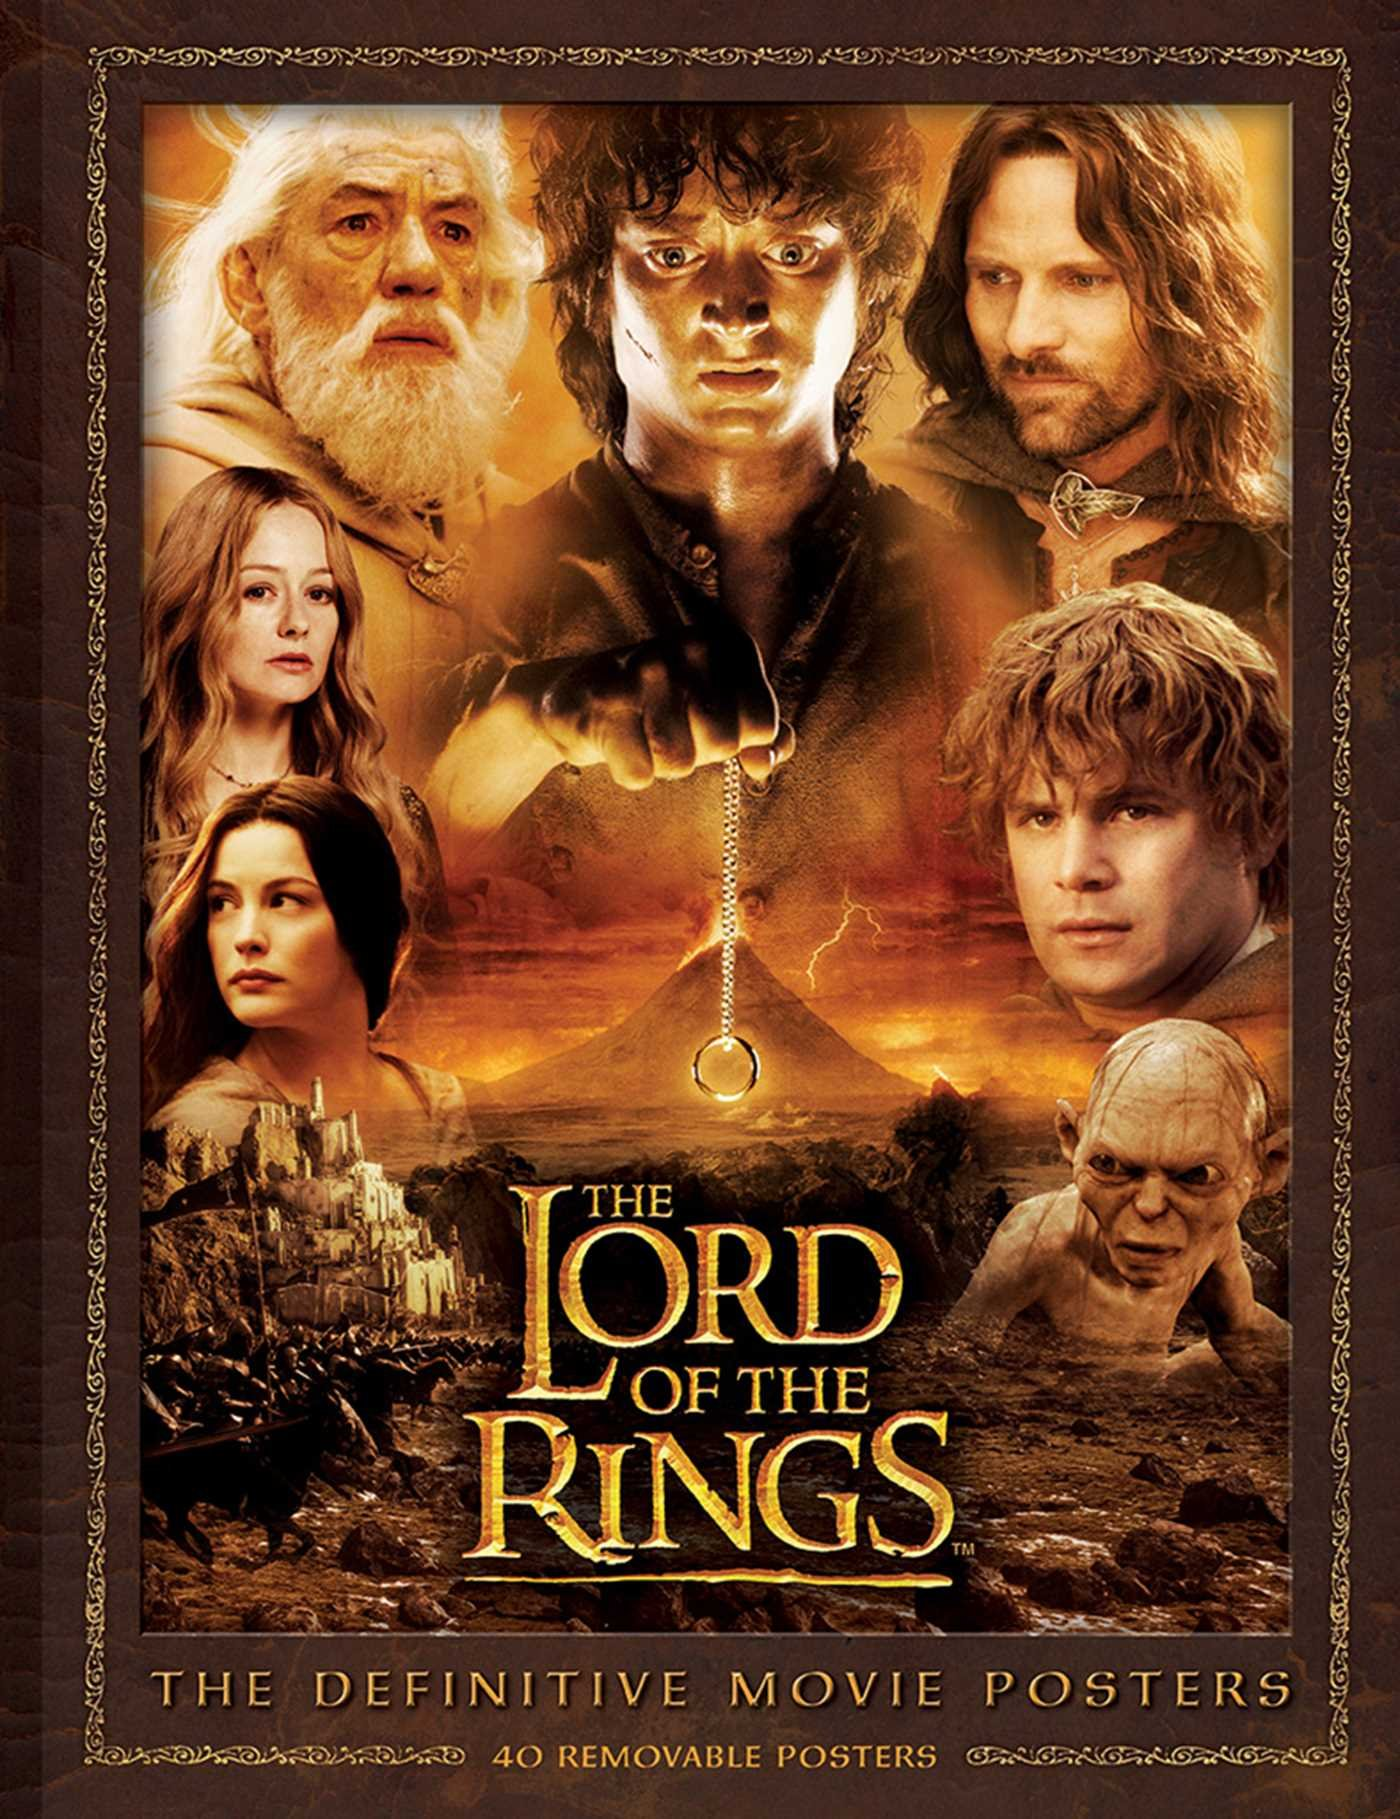 The Lord of the Rings: The Definitive Movie Posters (Insights Poster  Collections) Paperback – July 15, 2014